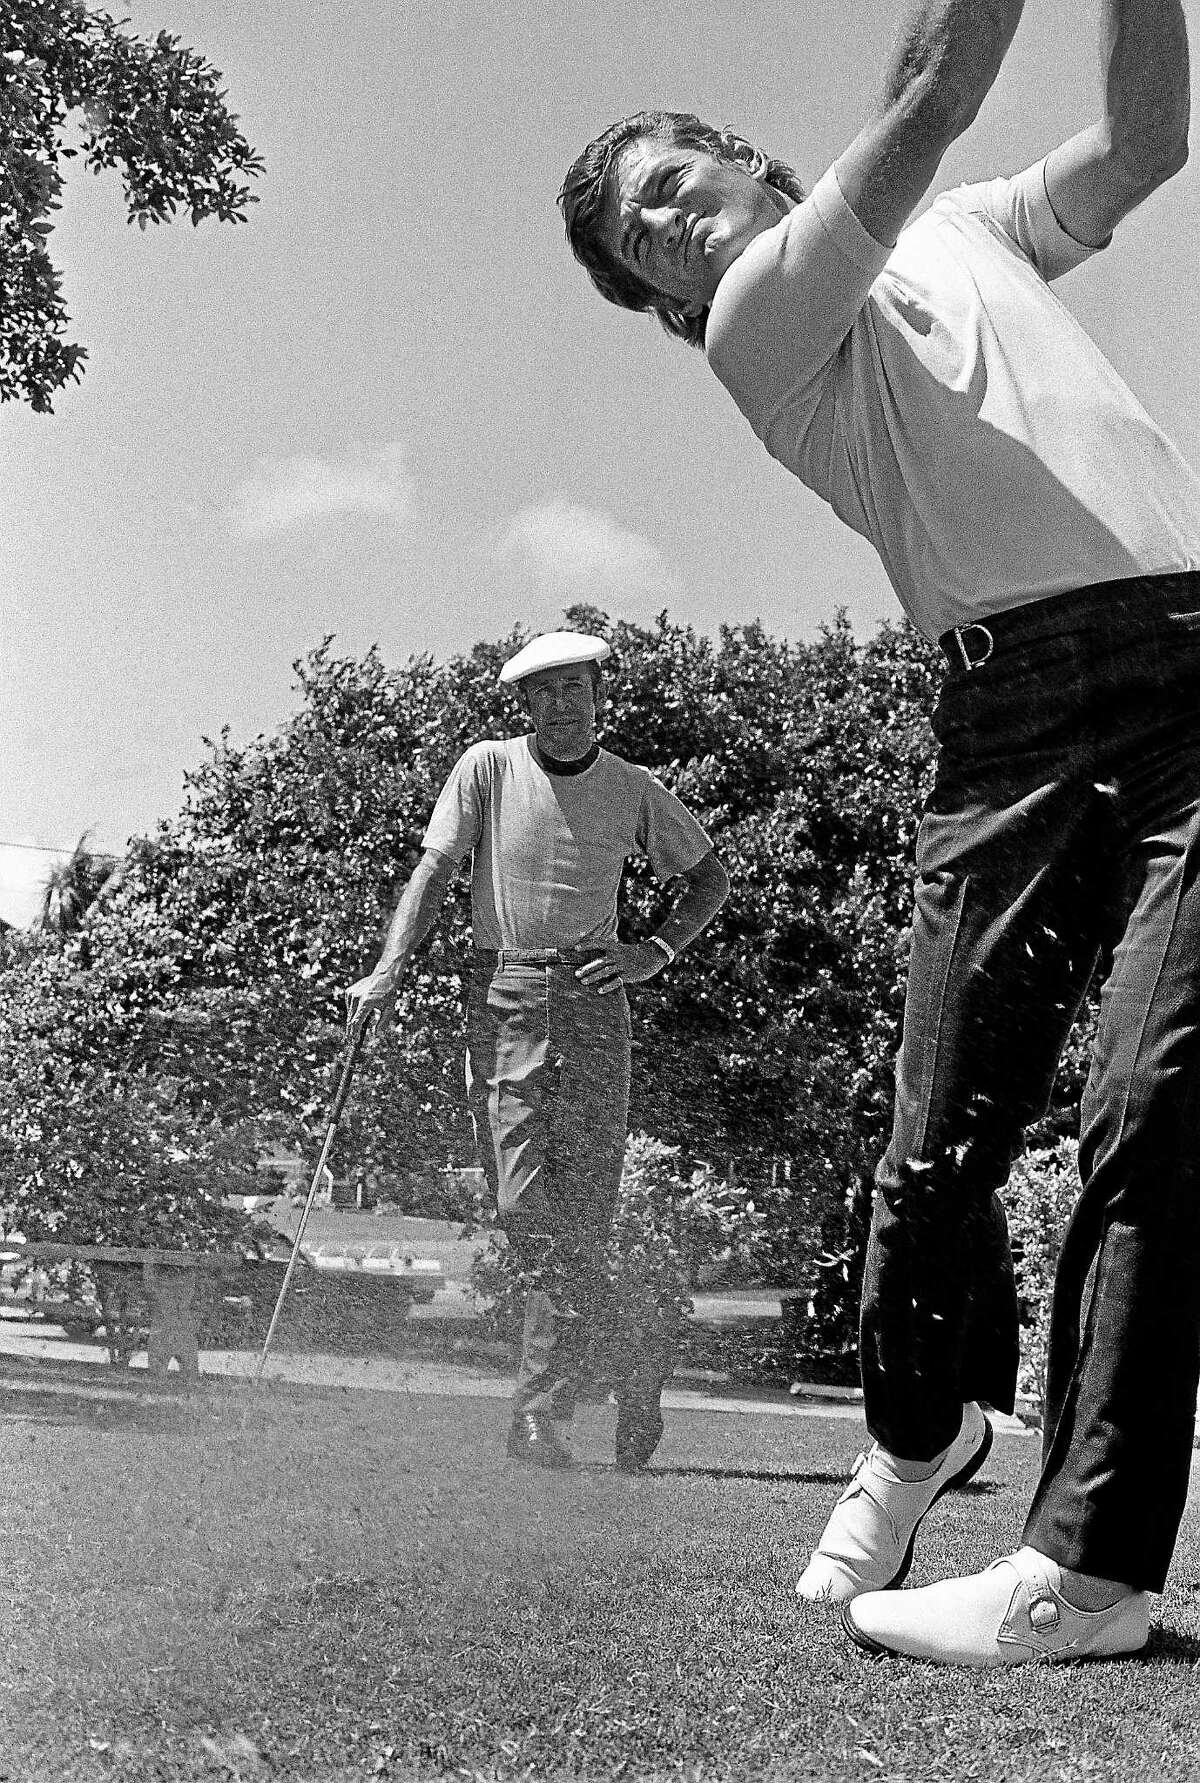 """Former major league outfielder, and current Chicago White Sox broadcaster, Ken """"Hawk"""" Harrelson follows through on his swing while his teacher, Bob Toski, look on during a practice session in September 1971. Ken Duke, the 2013 Travelers Championship winner, is a current pupil of the 87-year-old Toski, who recently returned to the scene of his 1953 Insurance City Open tournament victory."""